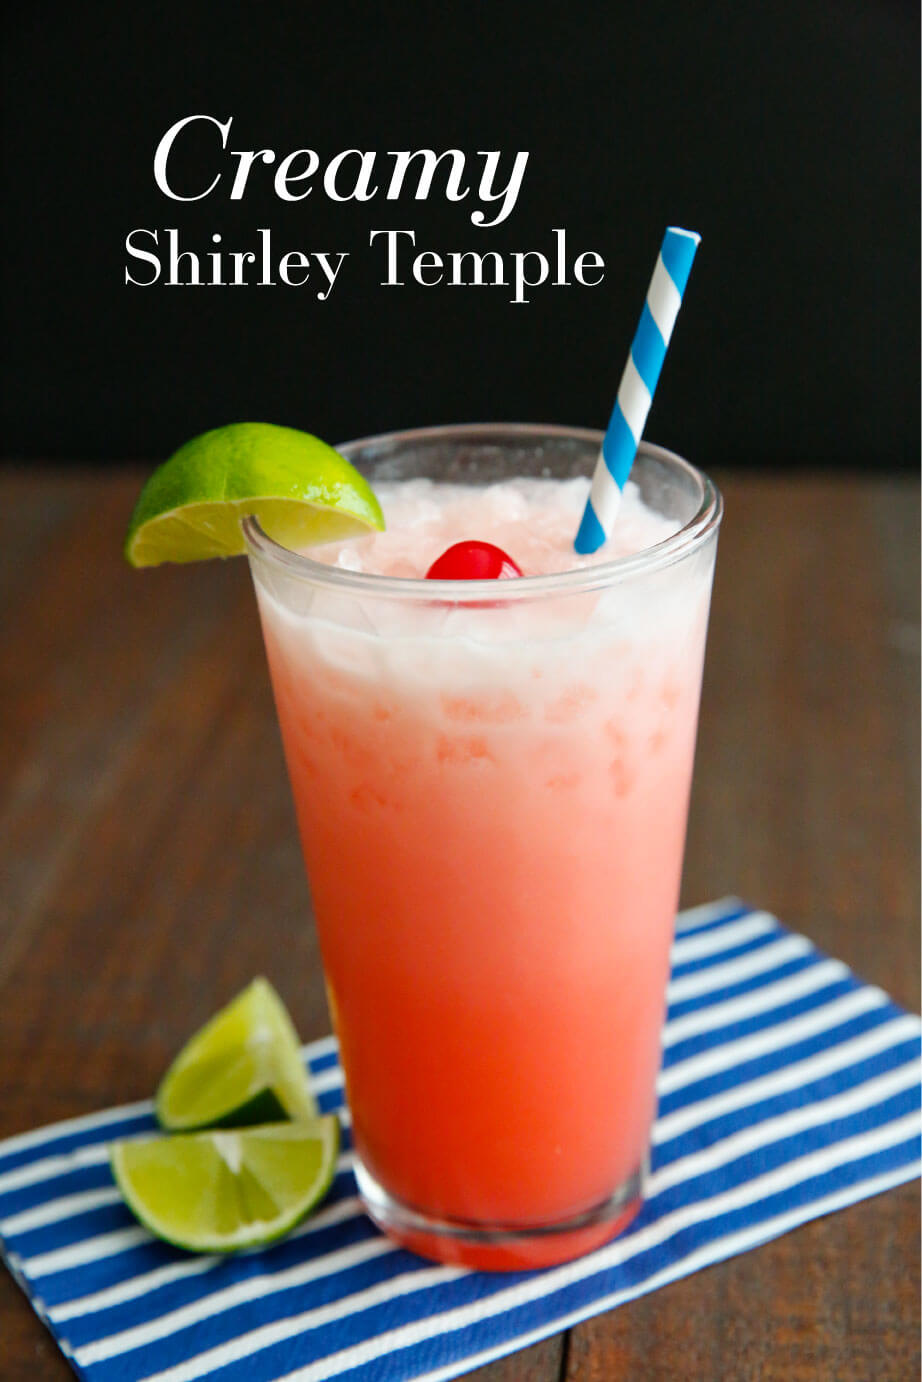 Creamy Shirley Temple - simple and delicious drink recipe. It's so refreshing!